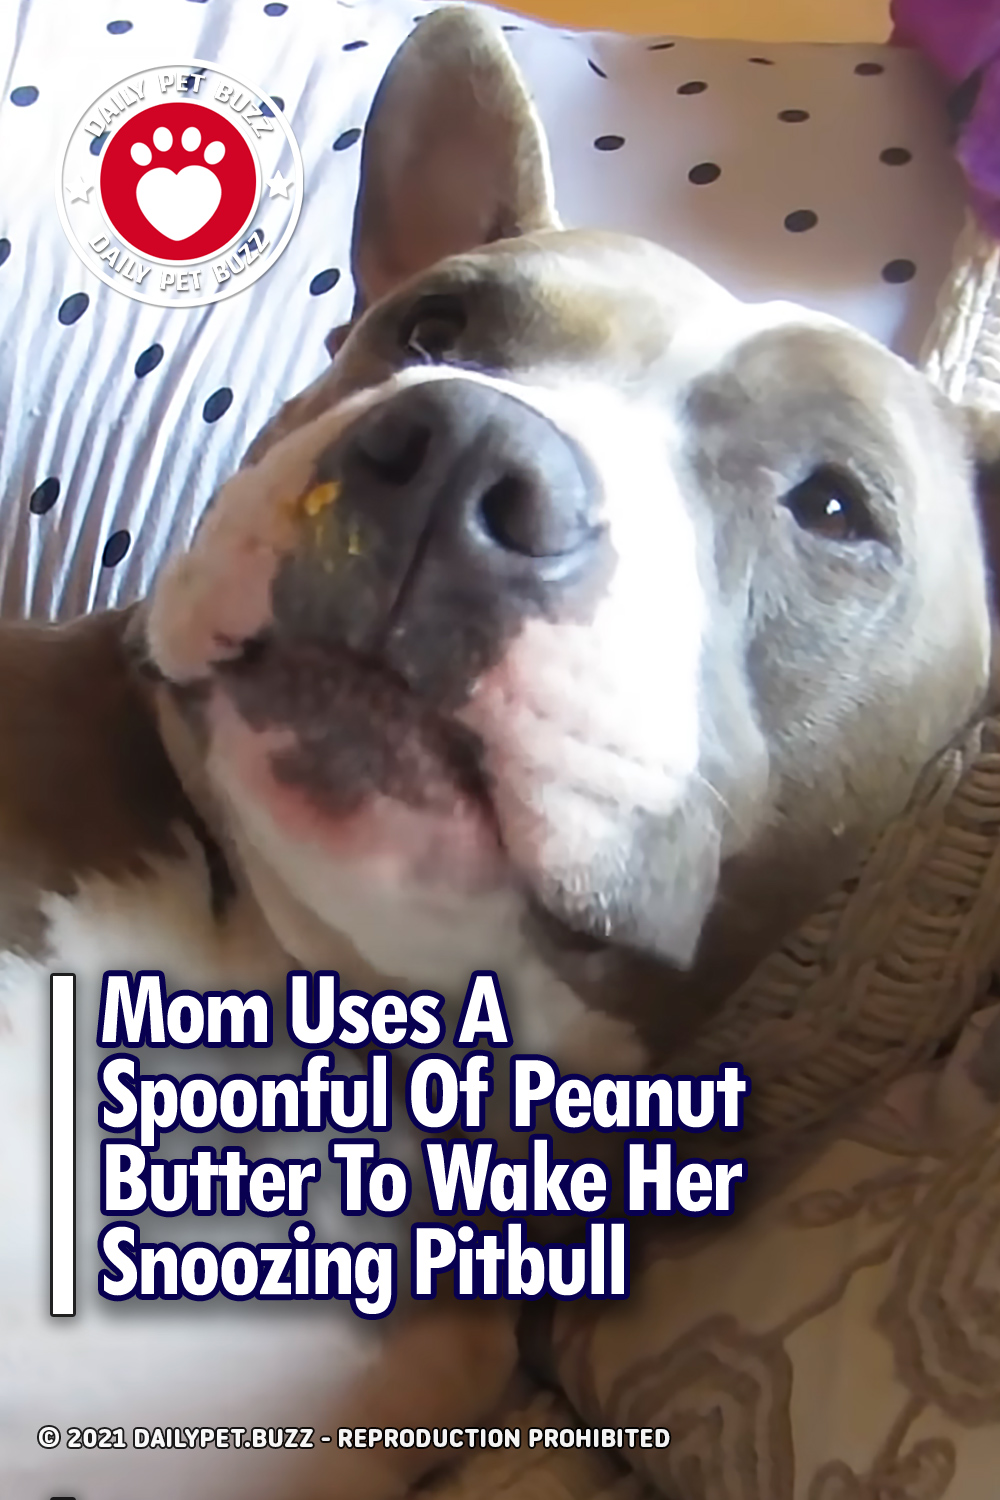 Mom Uses A Spoonful Of Peanut Butter To Wake Her Snoozing Pitbull